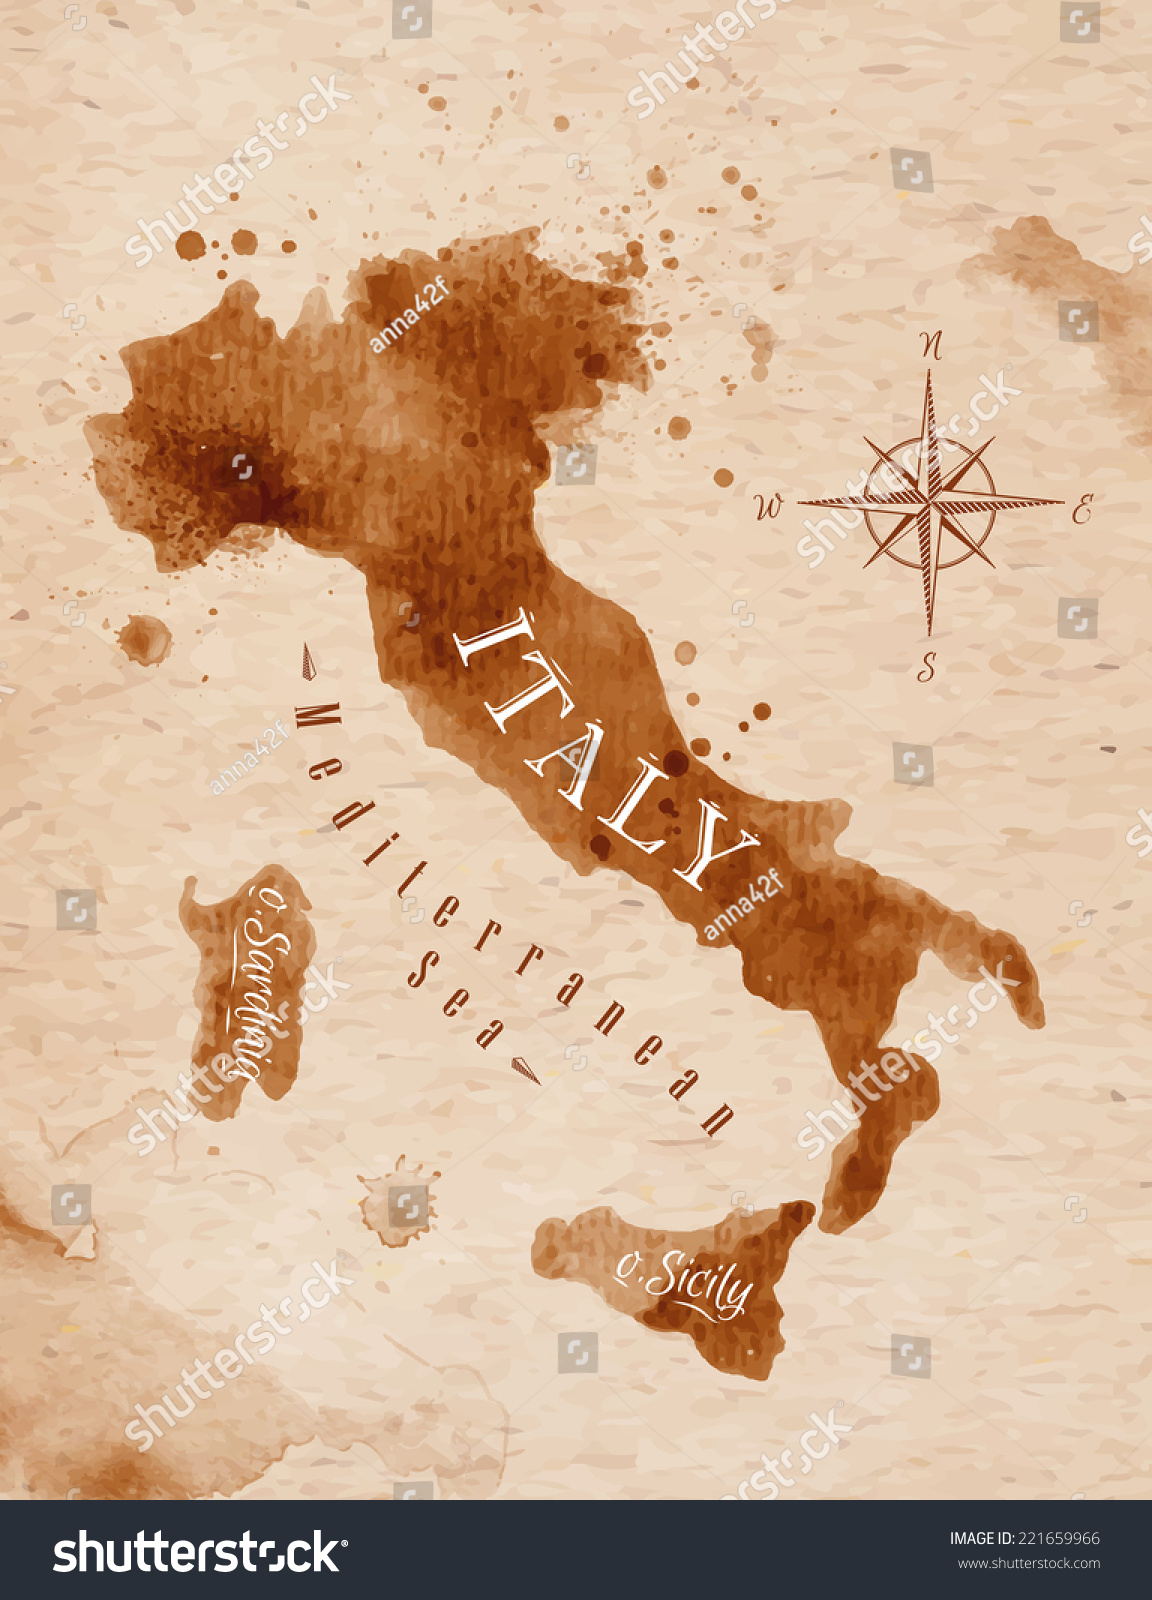 Map italy old style brown graphics stock vector 221659966 shutterstock map of italy in old style brown graphics in a retro style gumiabroncs Choice Image